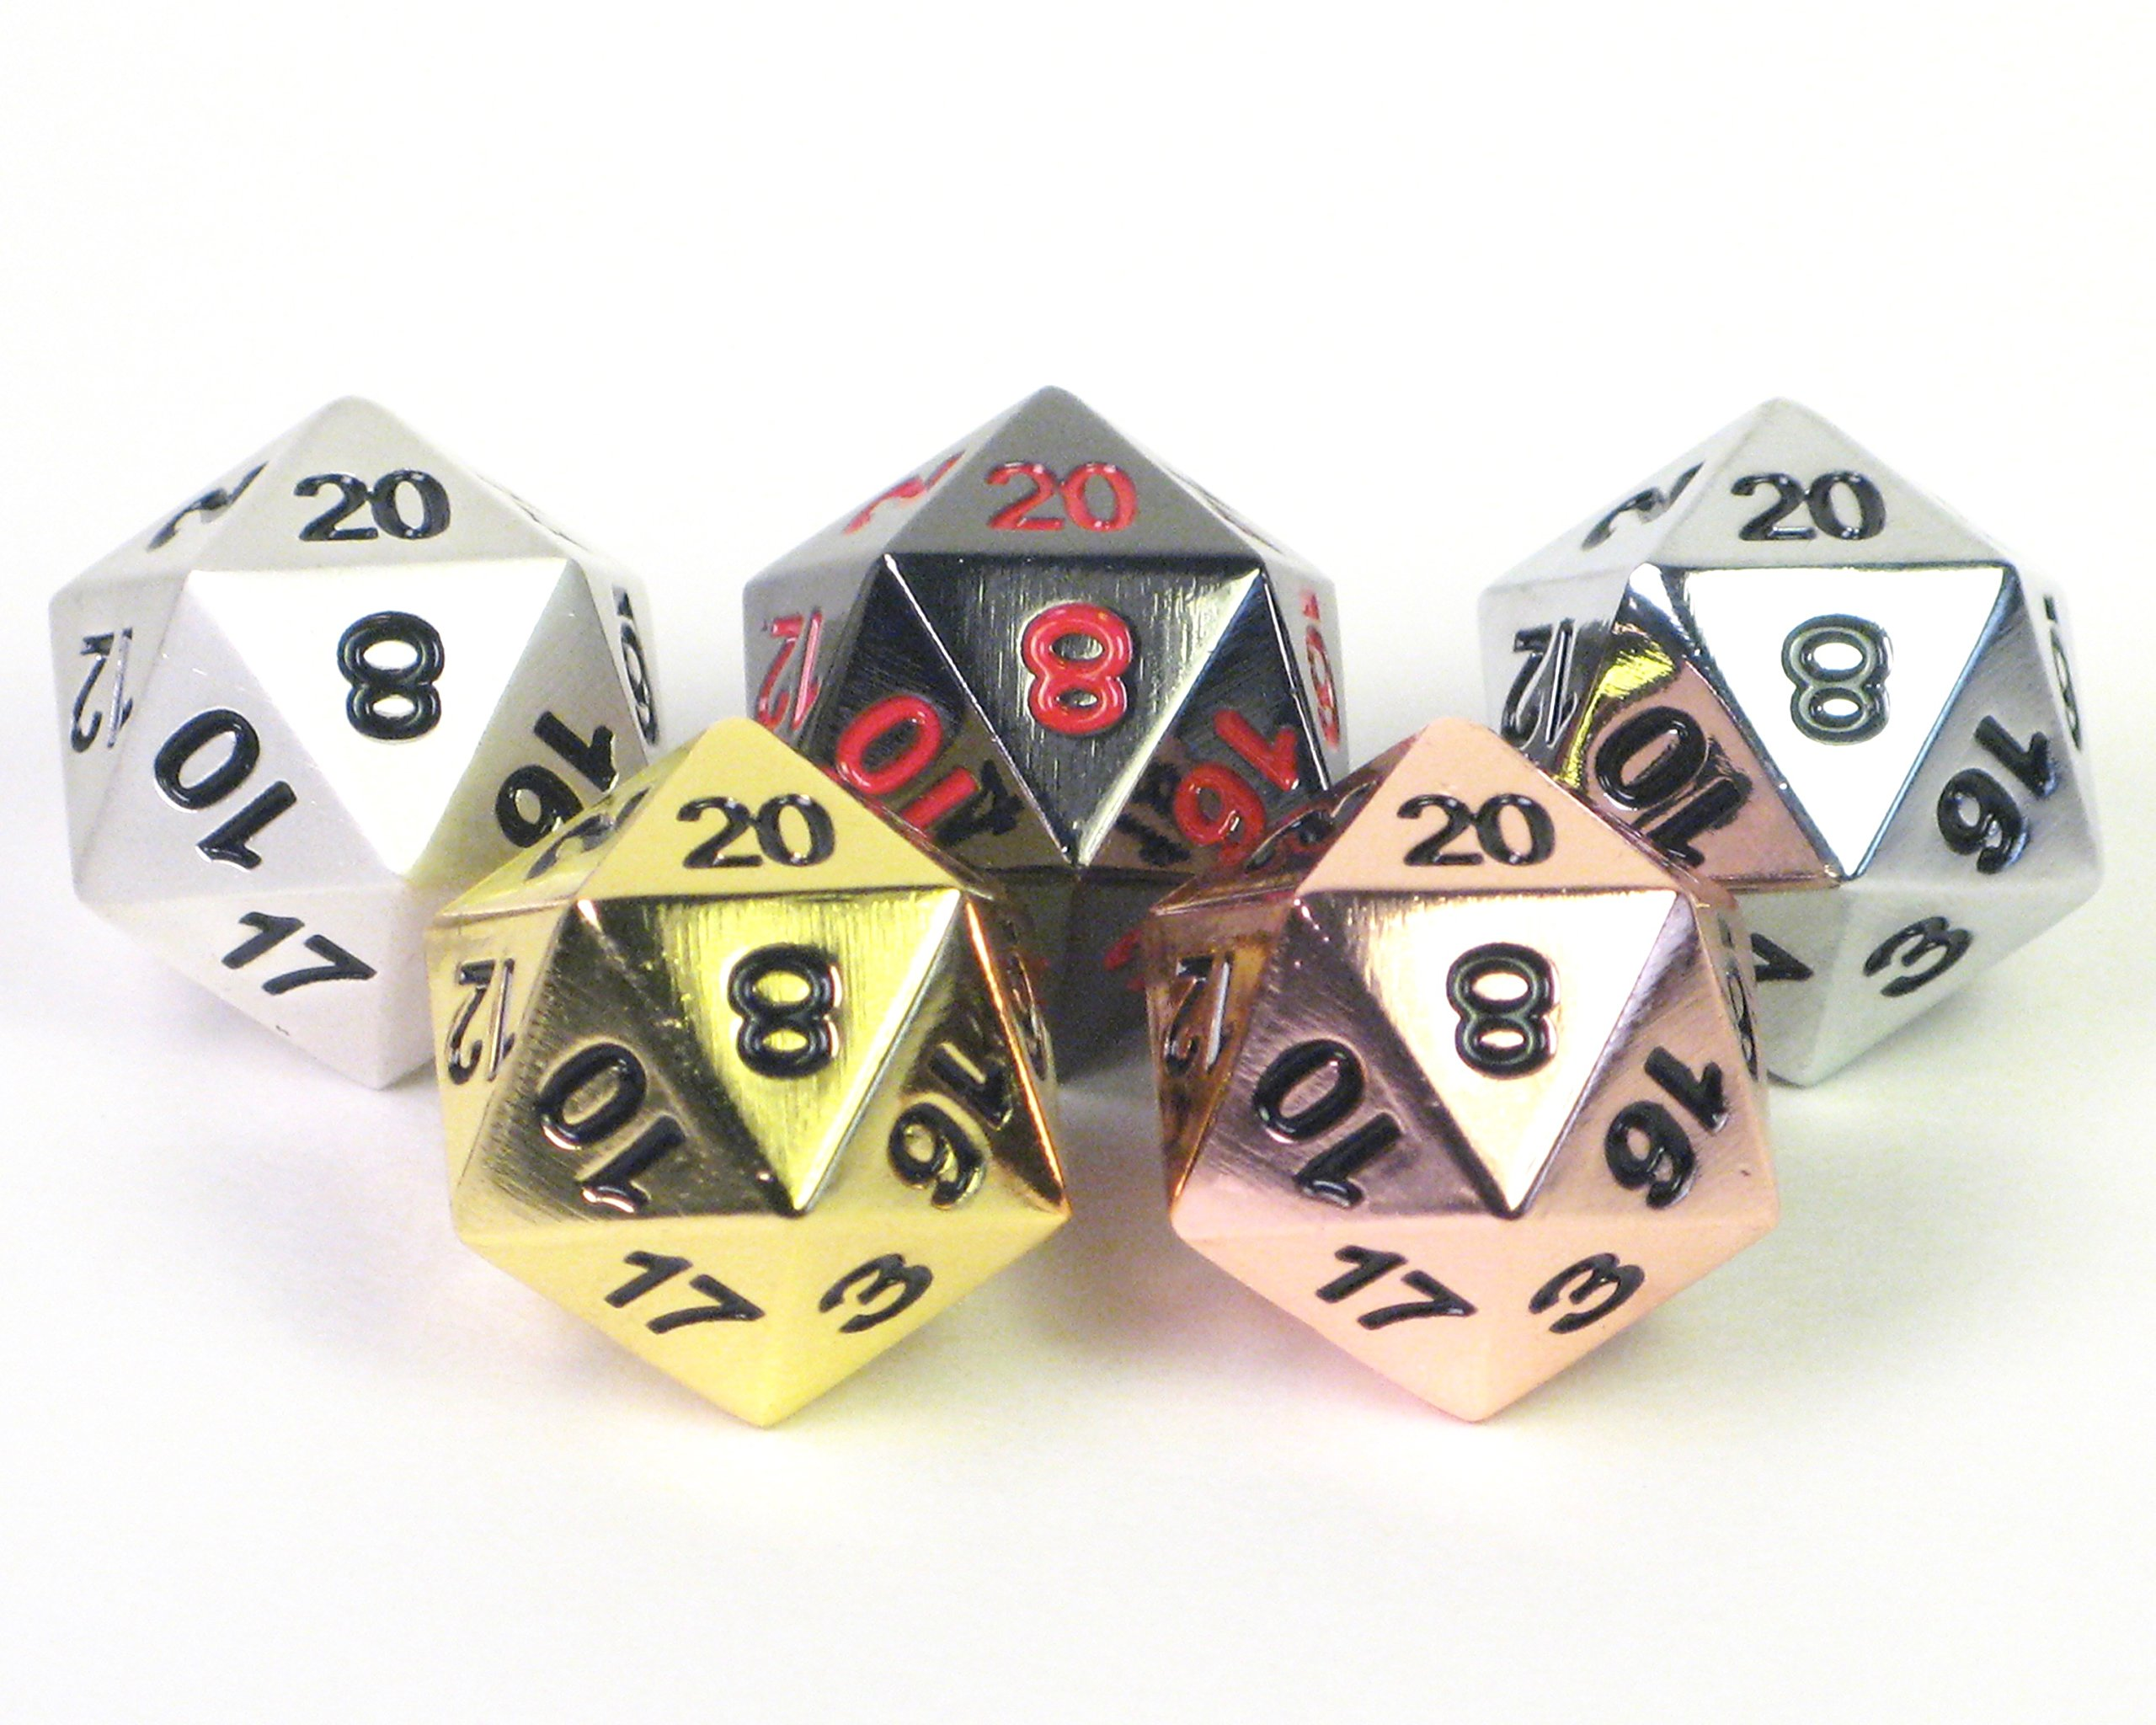 Ultimate! Solid Metal D20 Variety 5 Pack - Gold, Silver, Copper, Obsidian, Pearl - Polyhedral Twenty-Sided Dice Set